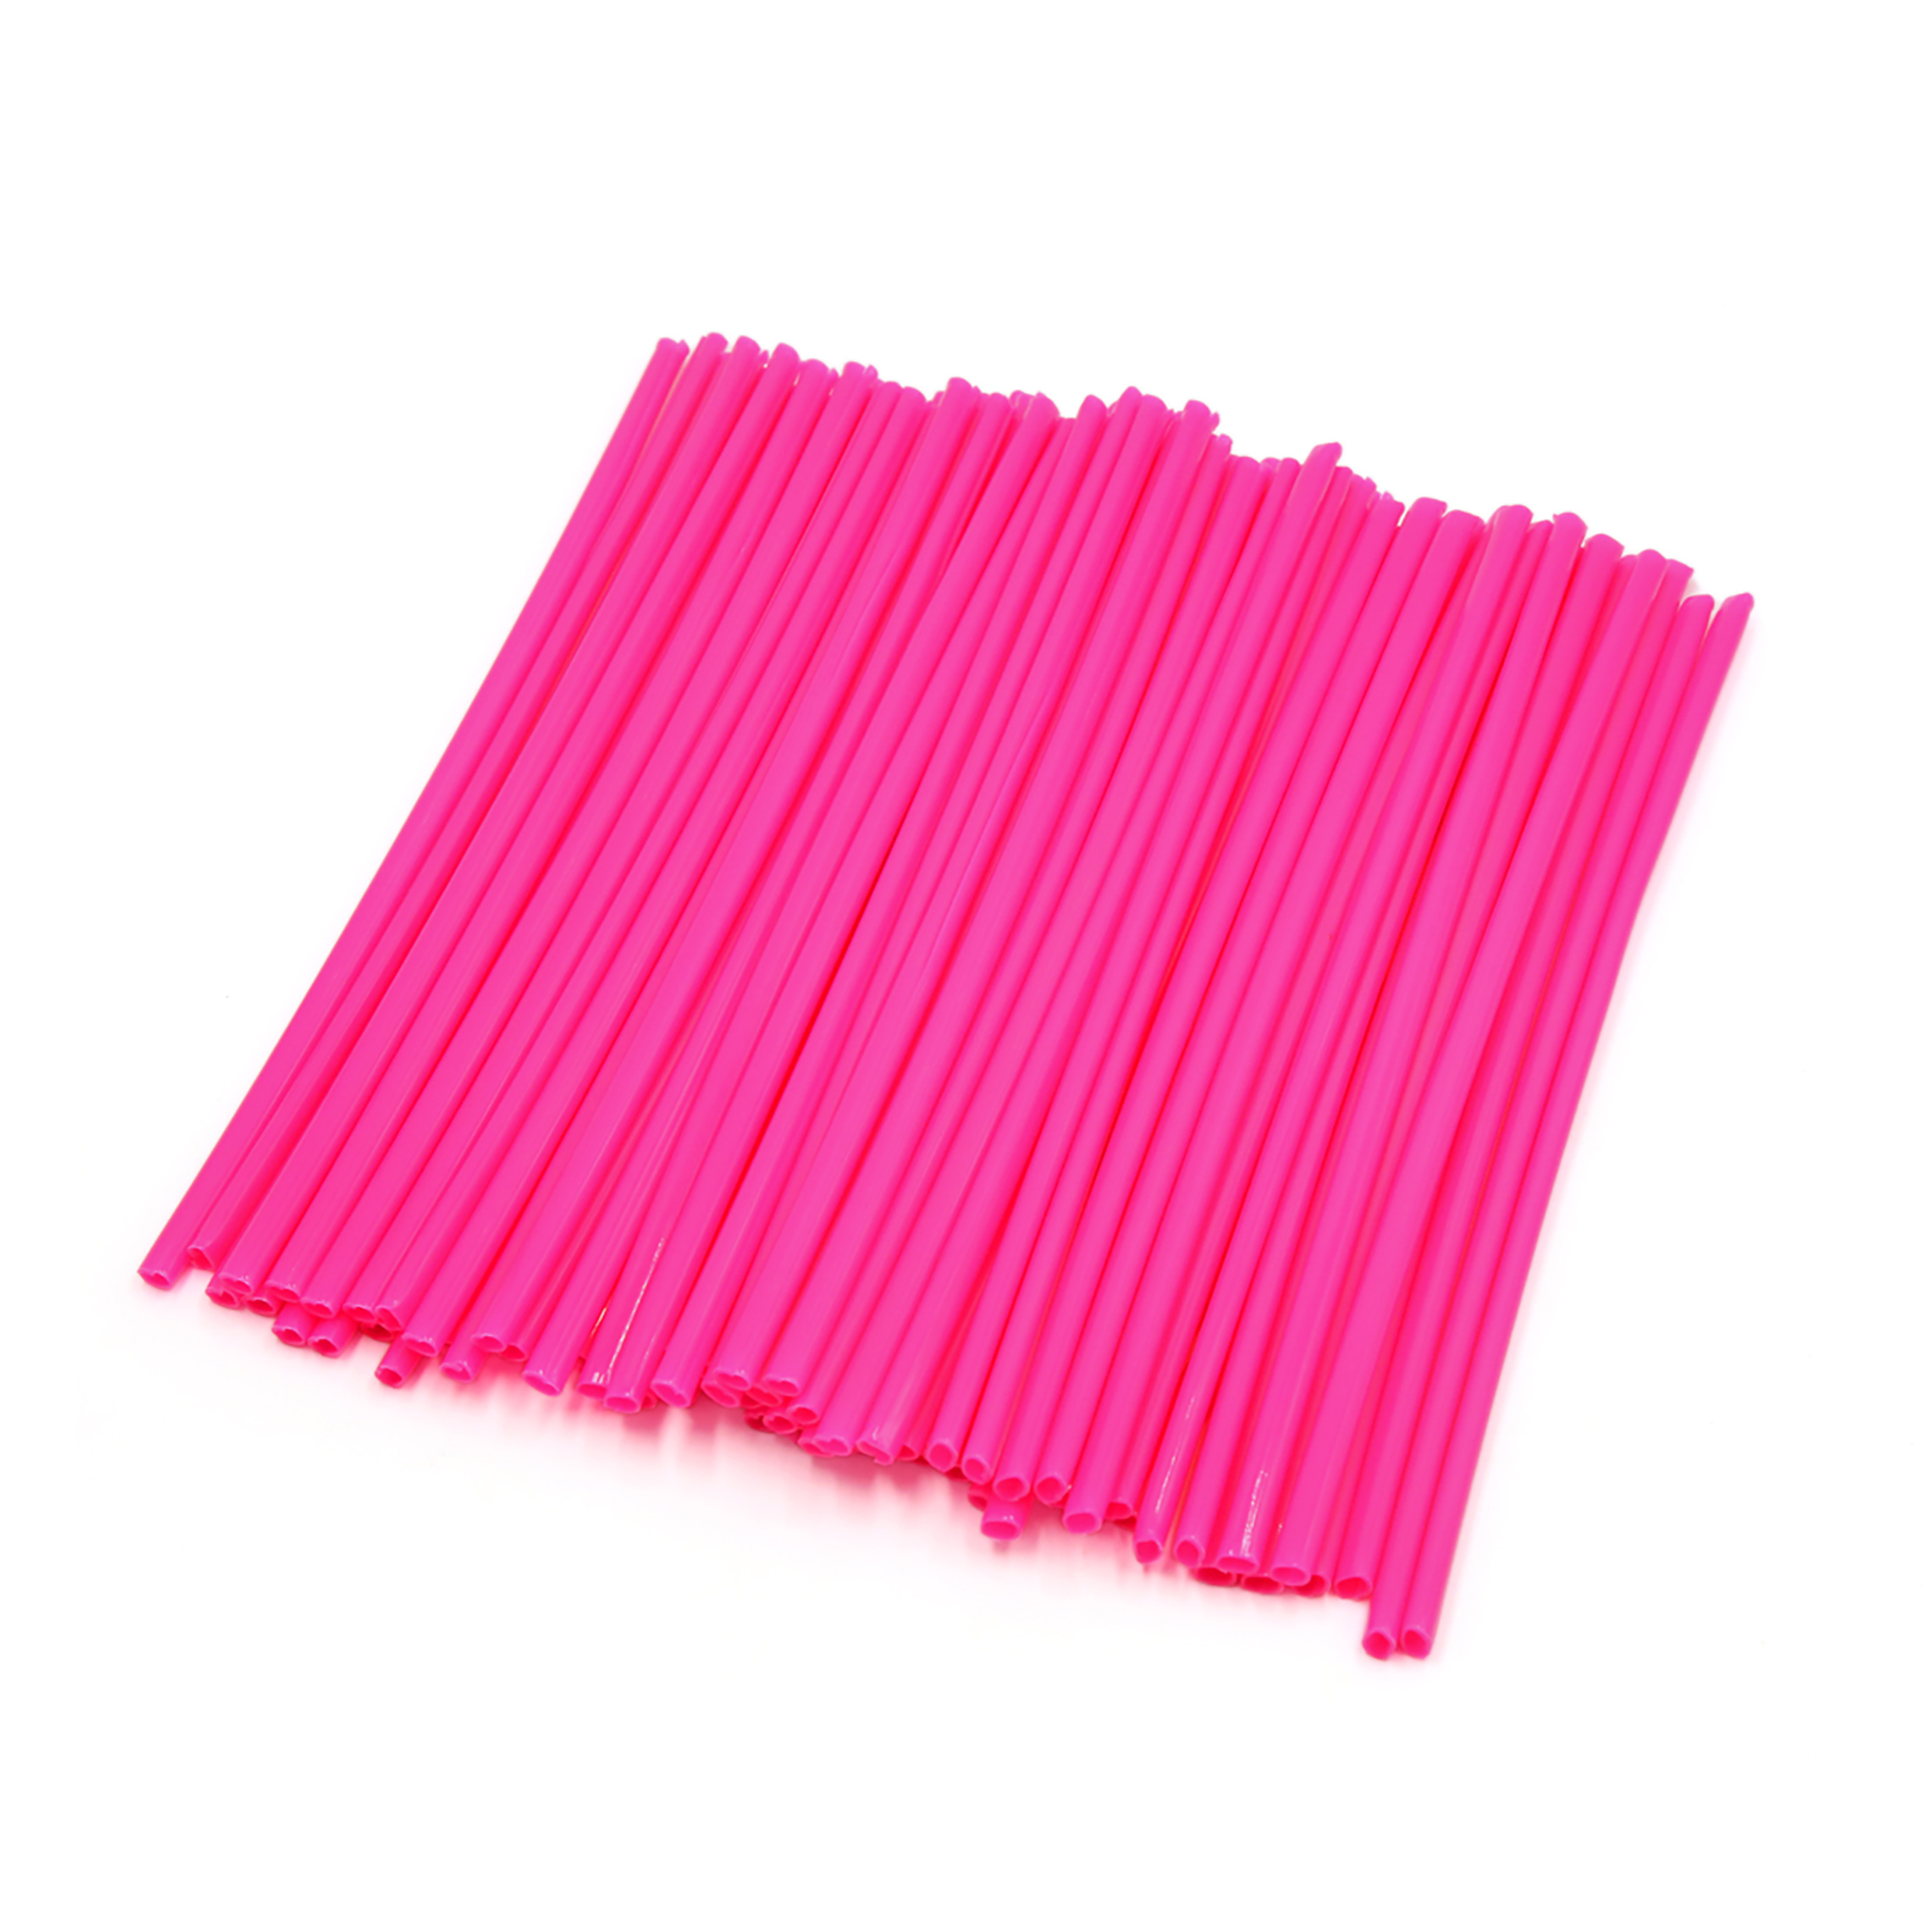 72Pcs Pink MTB Bicycle Bike Wheel Rim Spoke Tube Reflector Reflective Strips